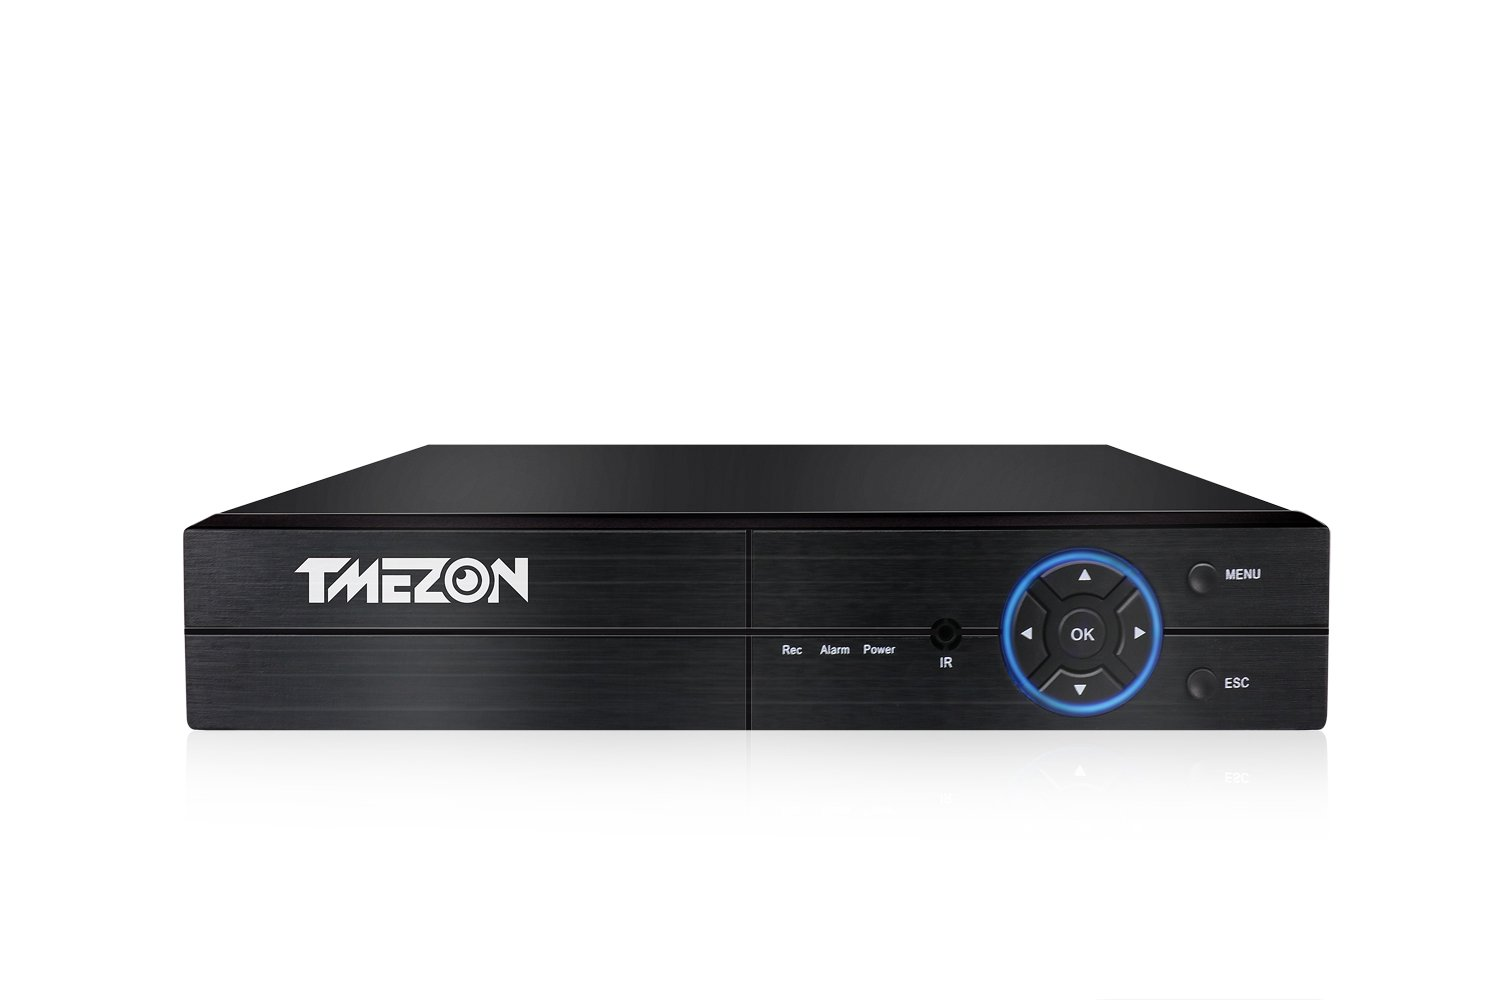 TMEZON 1080P Hybrid 5-in-1 AHD DVR (1080P NVR+1080P AHD+960H Analog +TVI+CVI) CCTV 4 Channel Standalone dvr Quick QR Code Scan w/Easy Remote View Home Security Surveillance Camera System